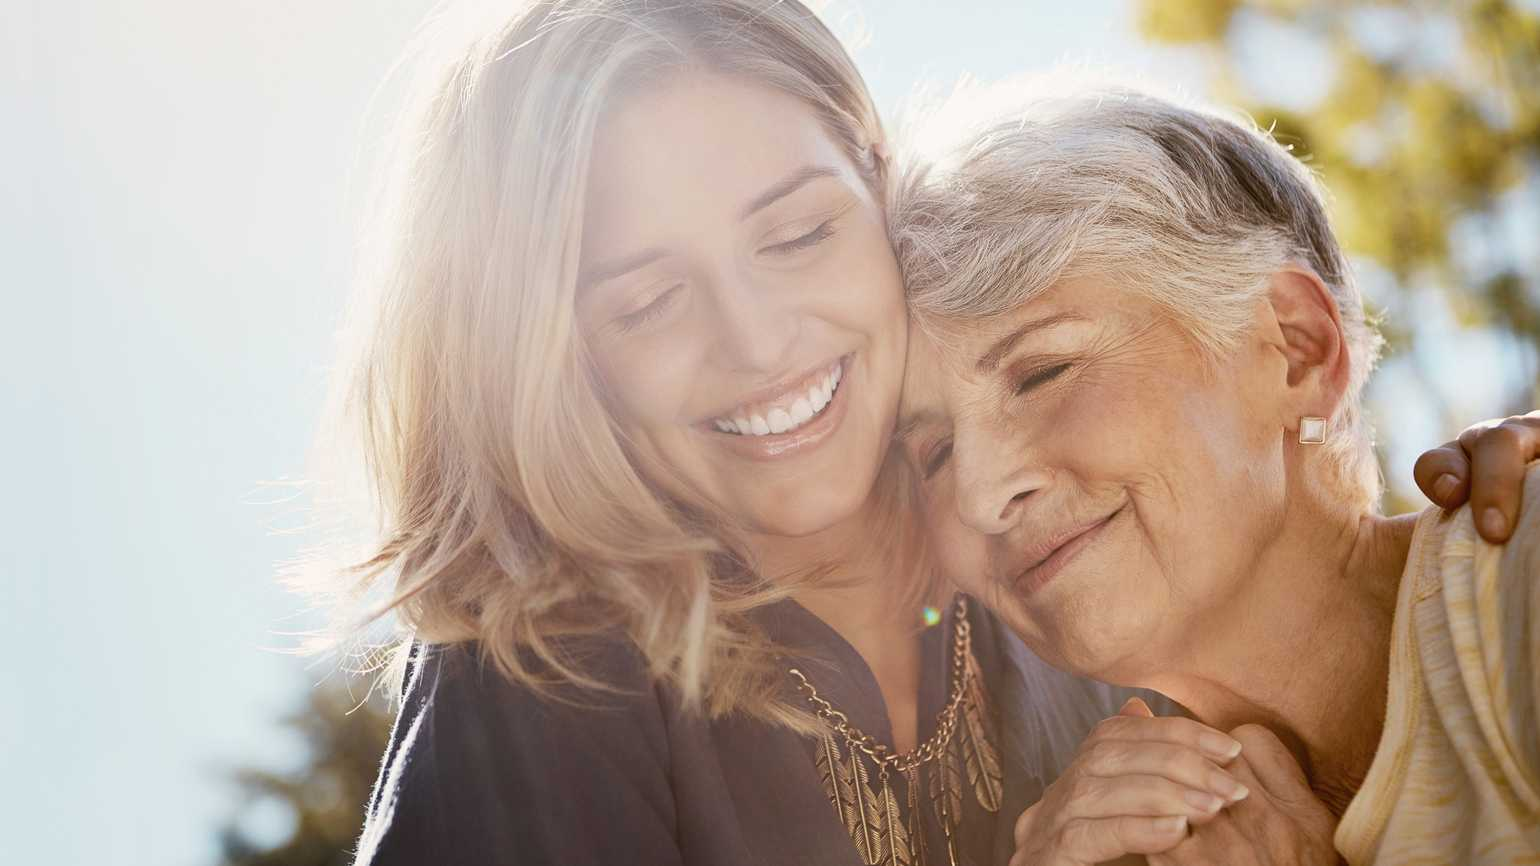 A sandwich generation daughter embraces her elderly mother with comfort.